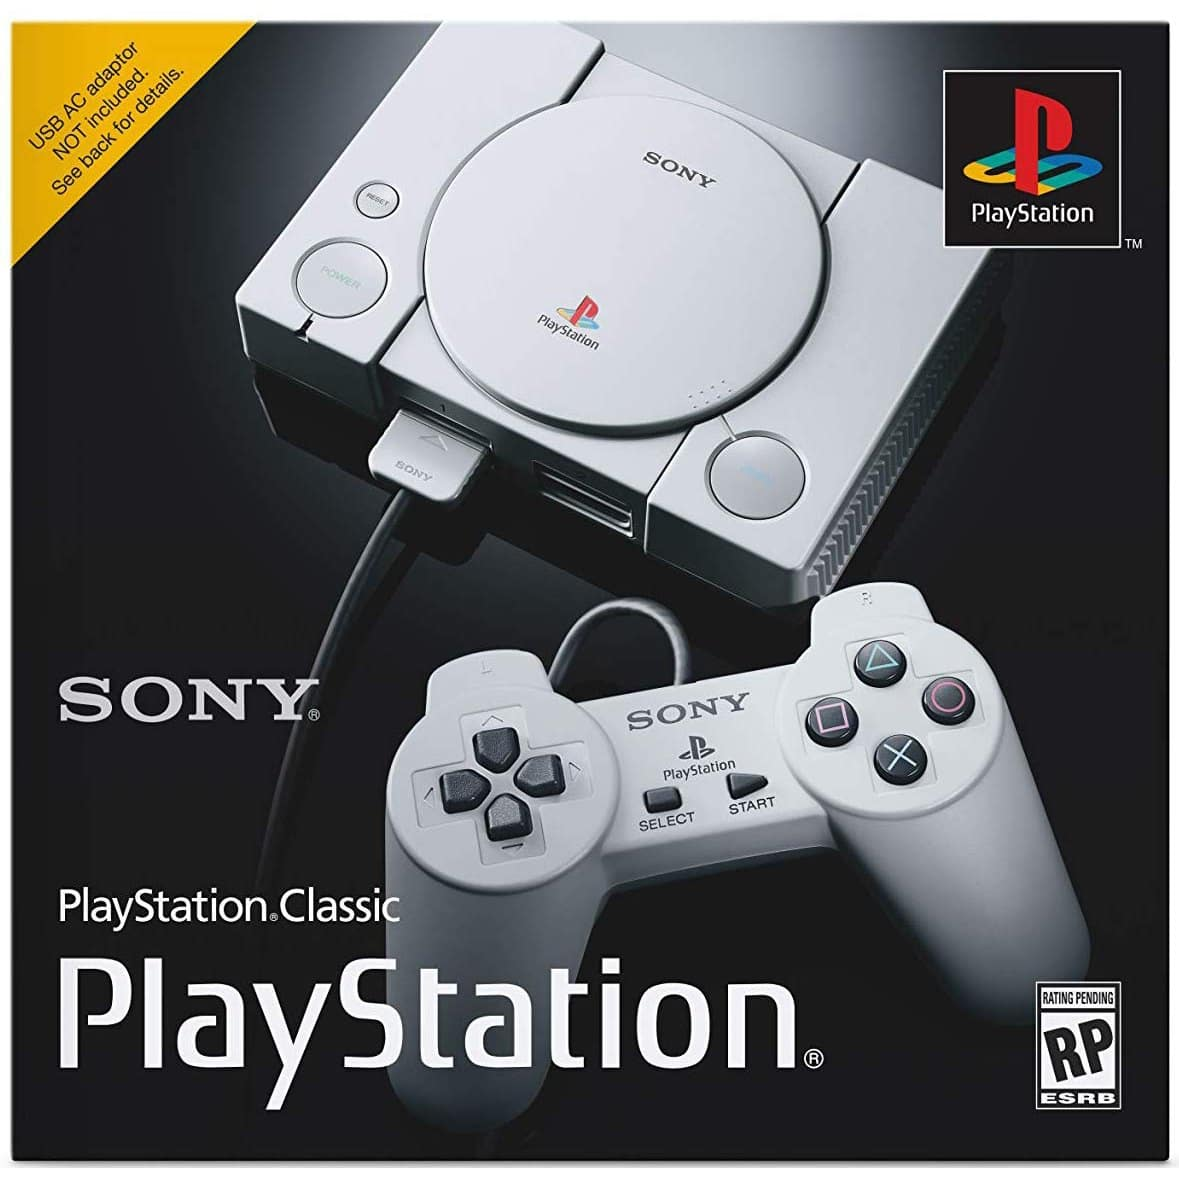 Sony Playstation Classic $49.60 + free s/h